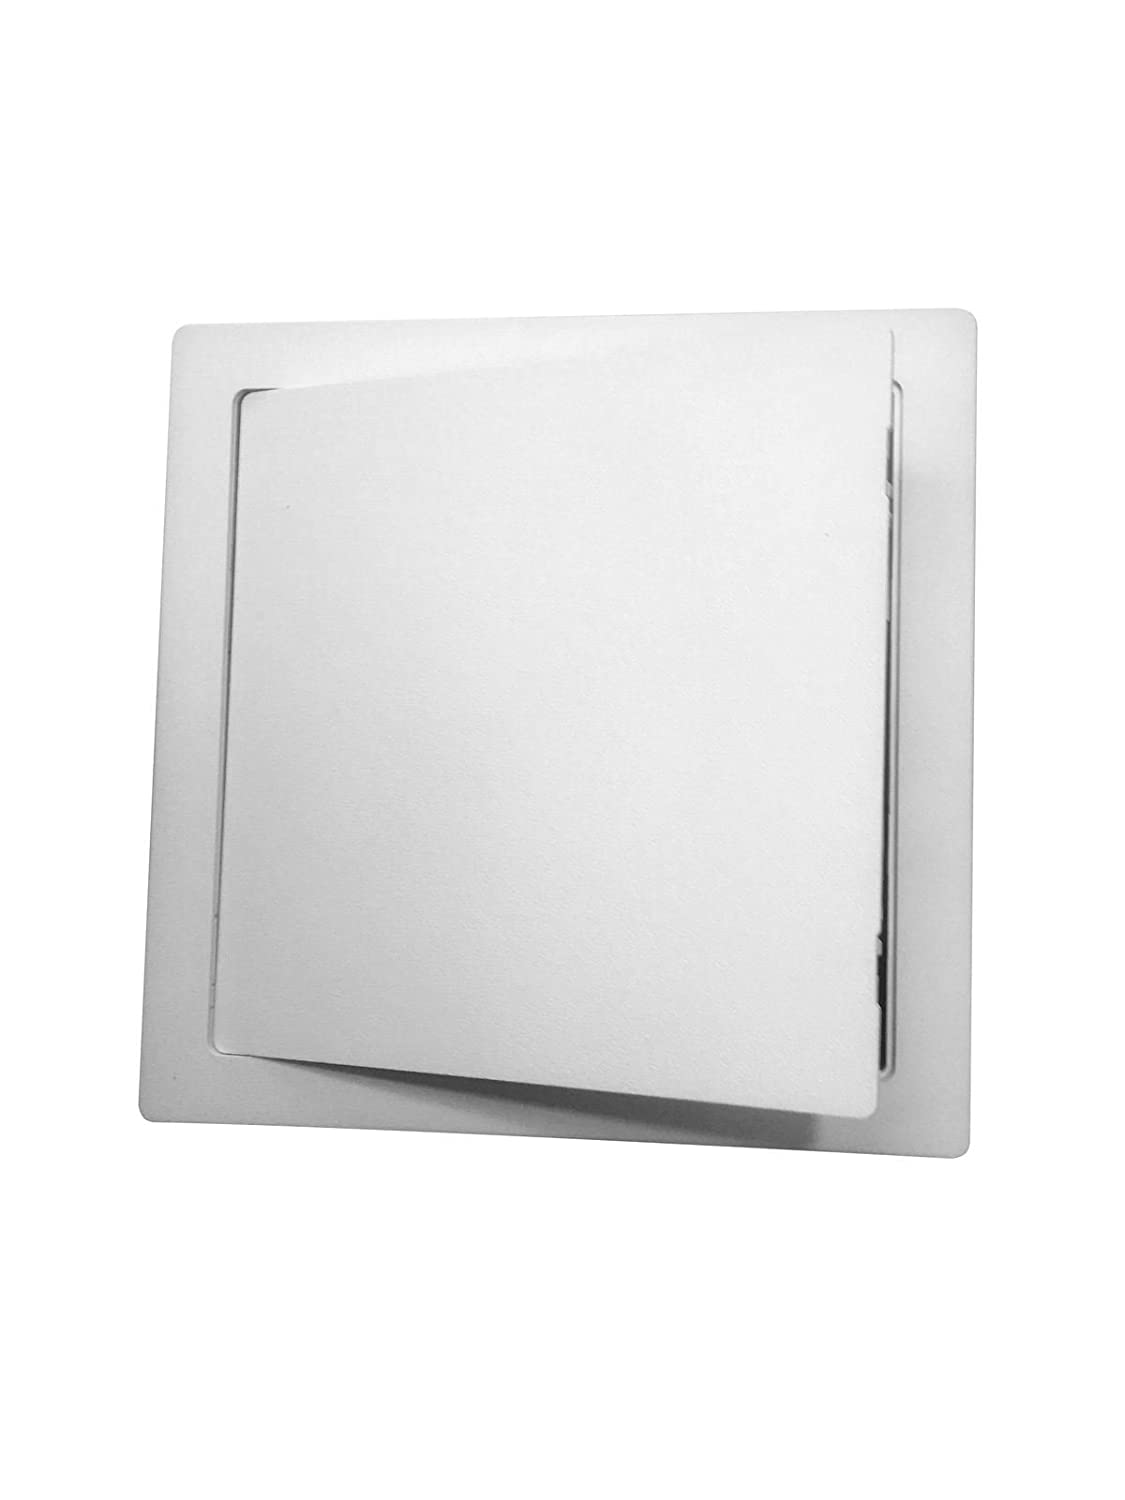 Access Panel White Inspection Hatch Plastic Revision Door Variety of Sizes Ranging from 6 x 9' to 22 x 22' High Quality ASA Plastic (6 x 9') Airtech